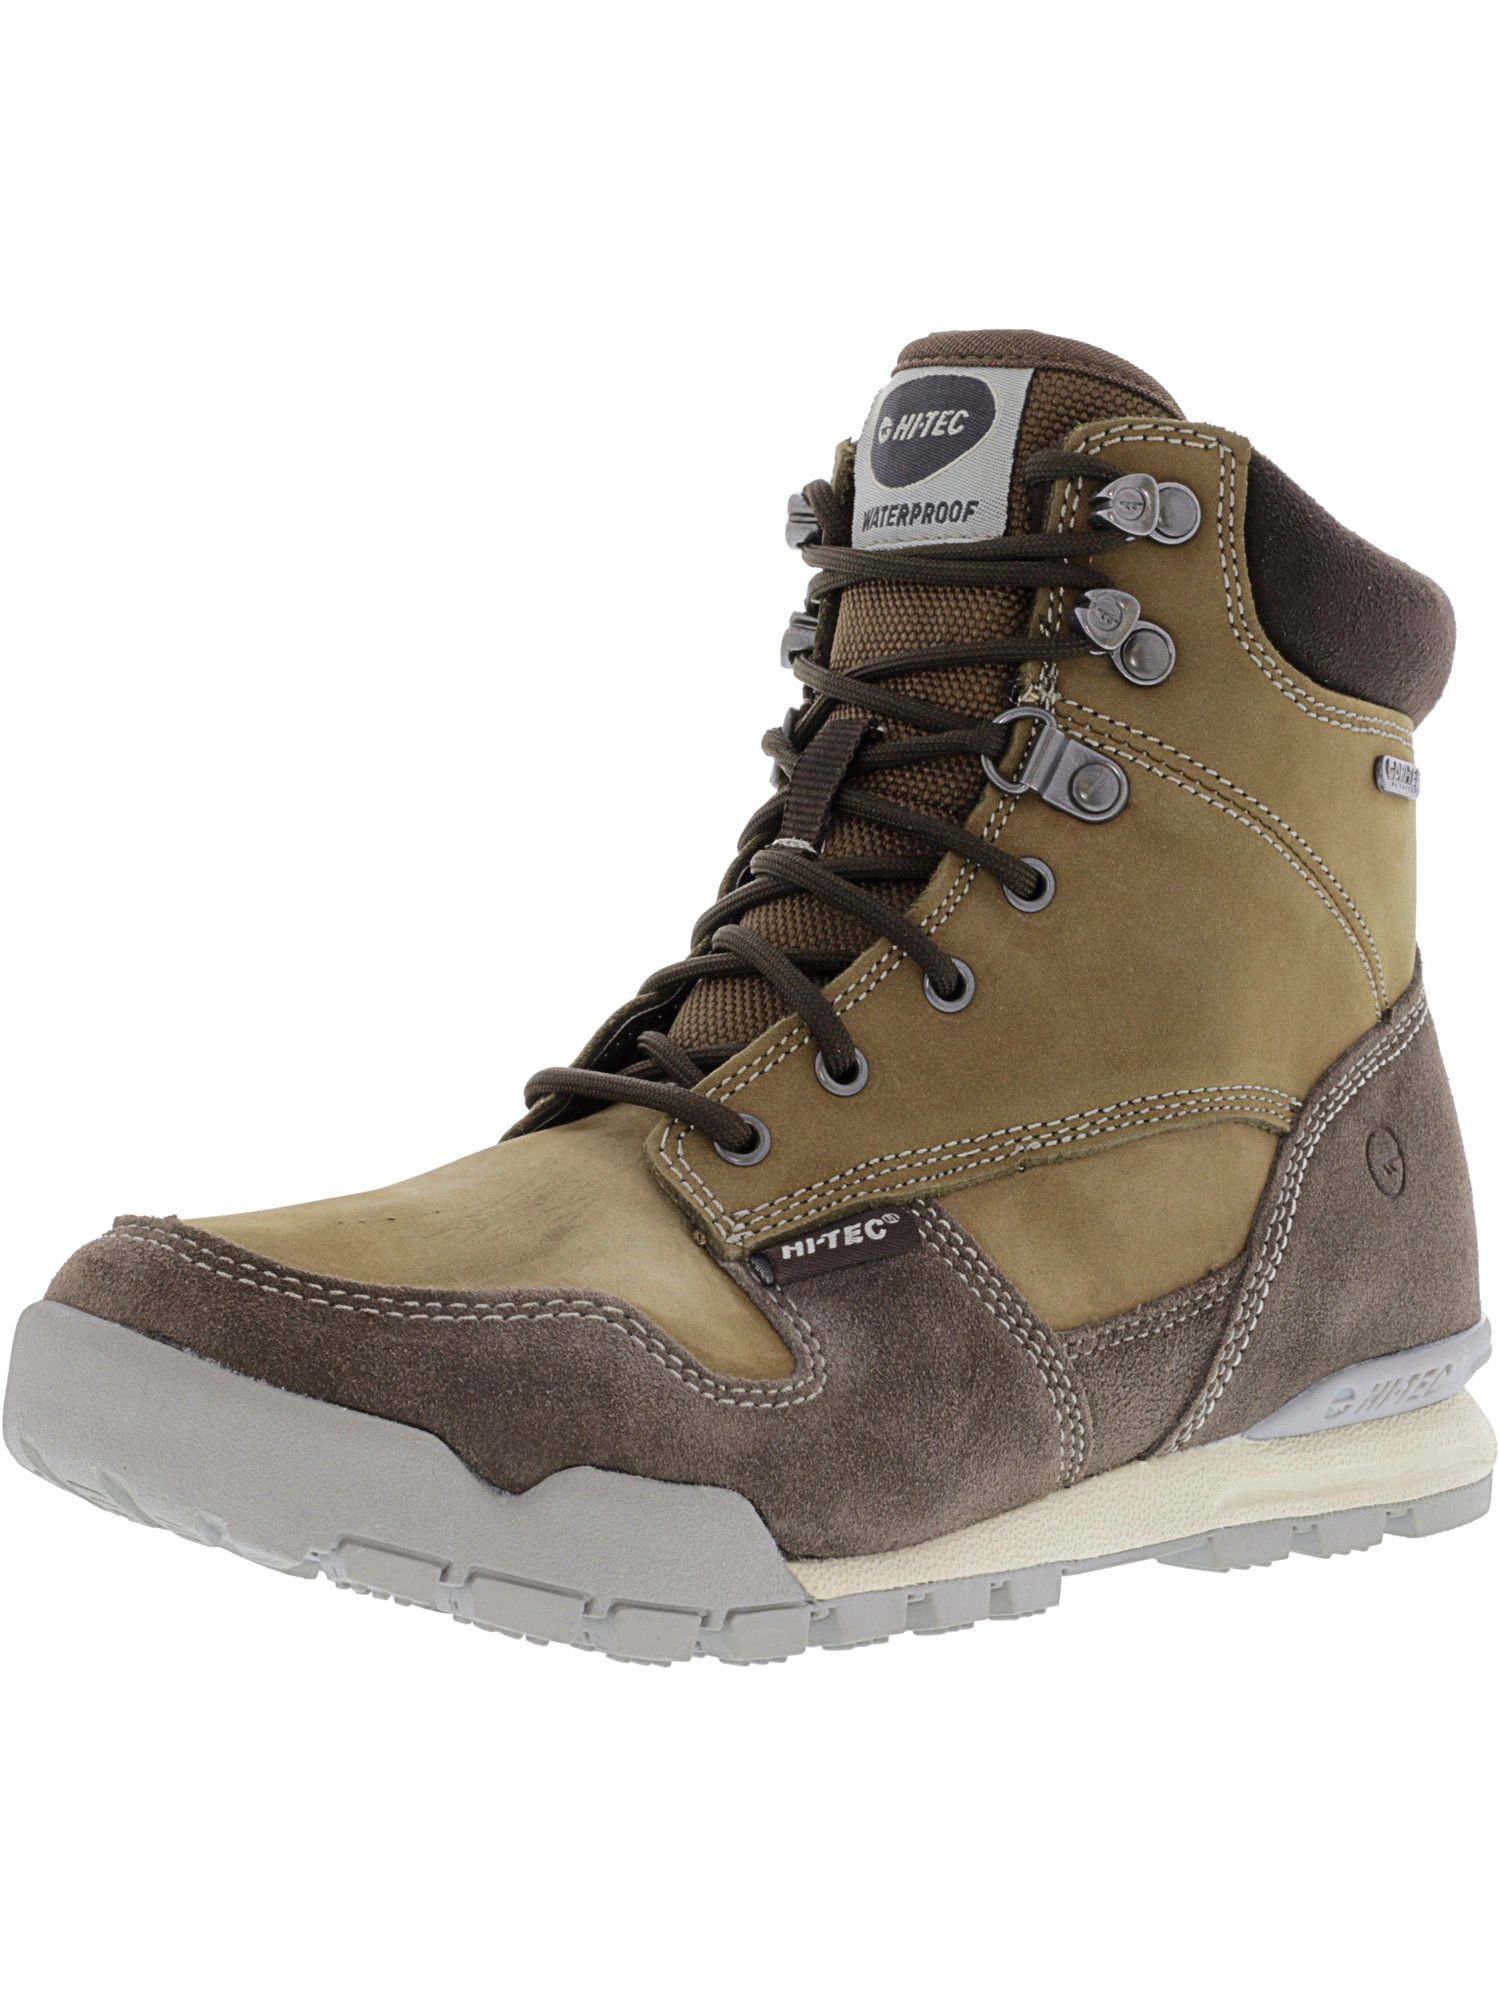 Hi-Tec Women's Sierra Tarma I Waterproof Brown   Cool Grey High-Top Leather Hiking Boot 6M by Hi-Tec